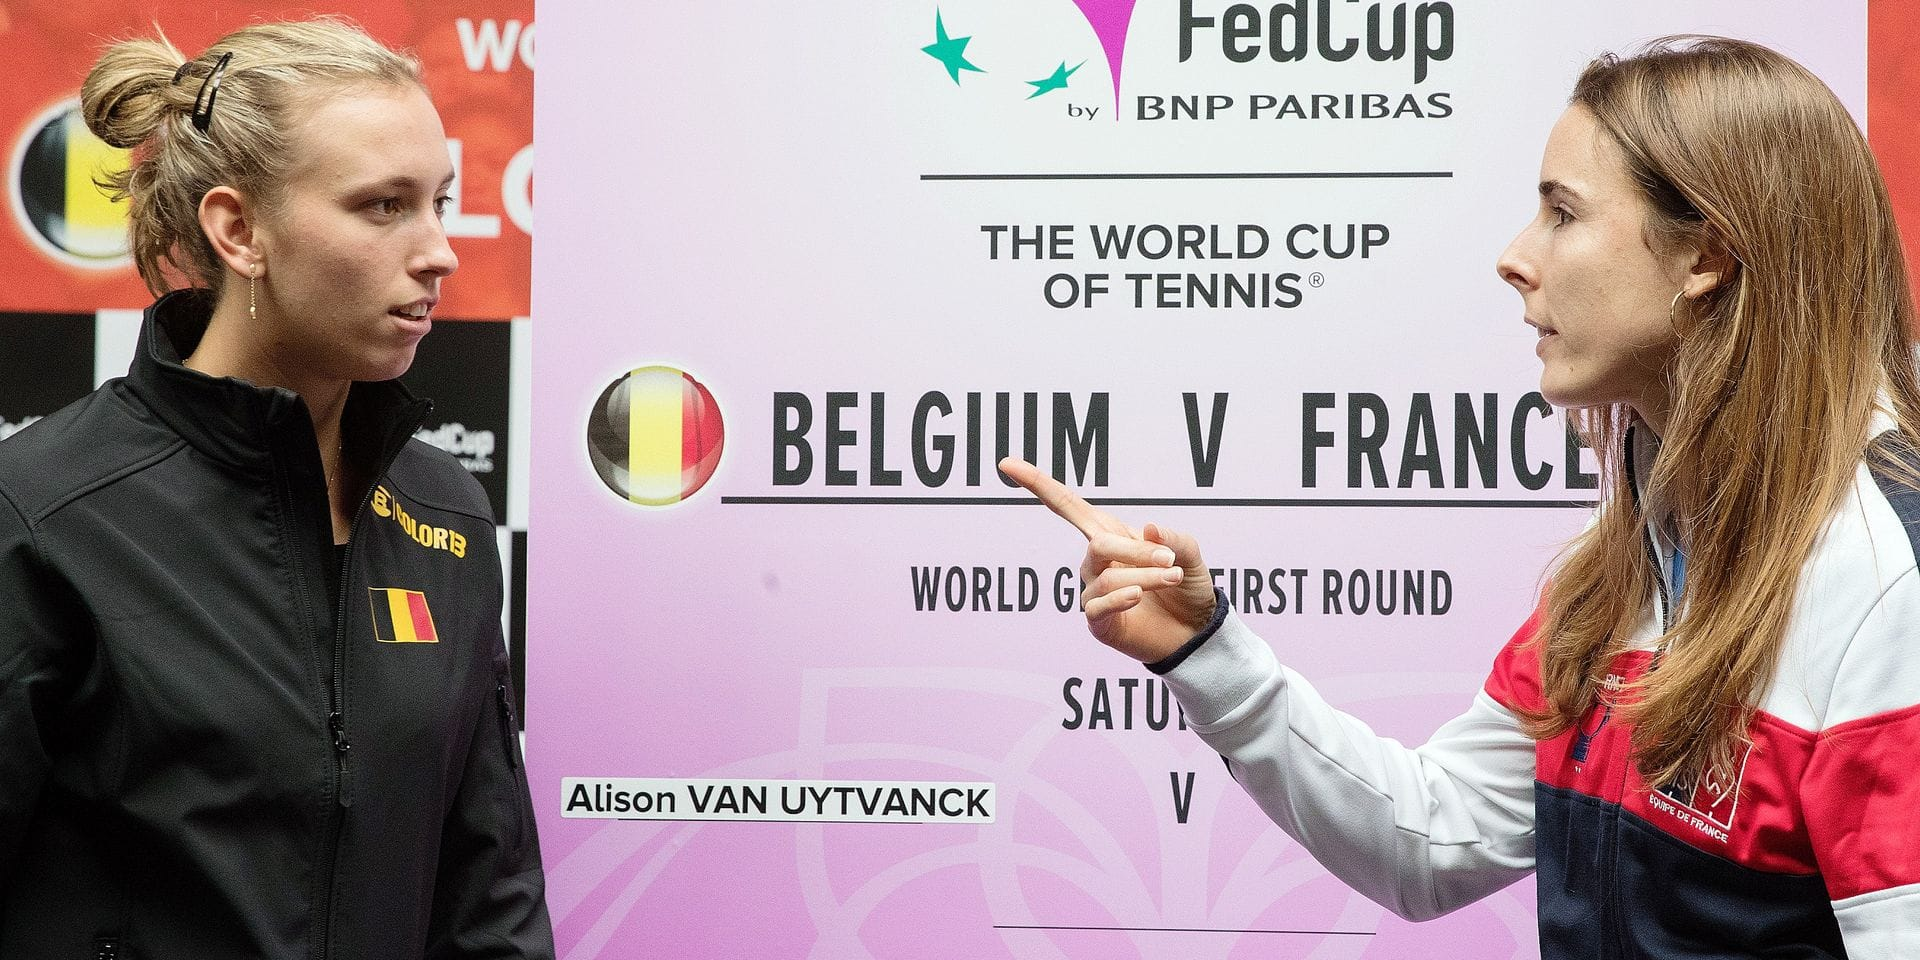 Belgian Elise Mertens and French Alize Cornet pose after the draw of the playing schedule for this weekend's quarter-final of the Fed Cup tennis meeting between Belgium and France, in the World Group, Friday 08 February 2019, in Liege. BELGA PHOTO BENOIT DOPPAGNE